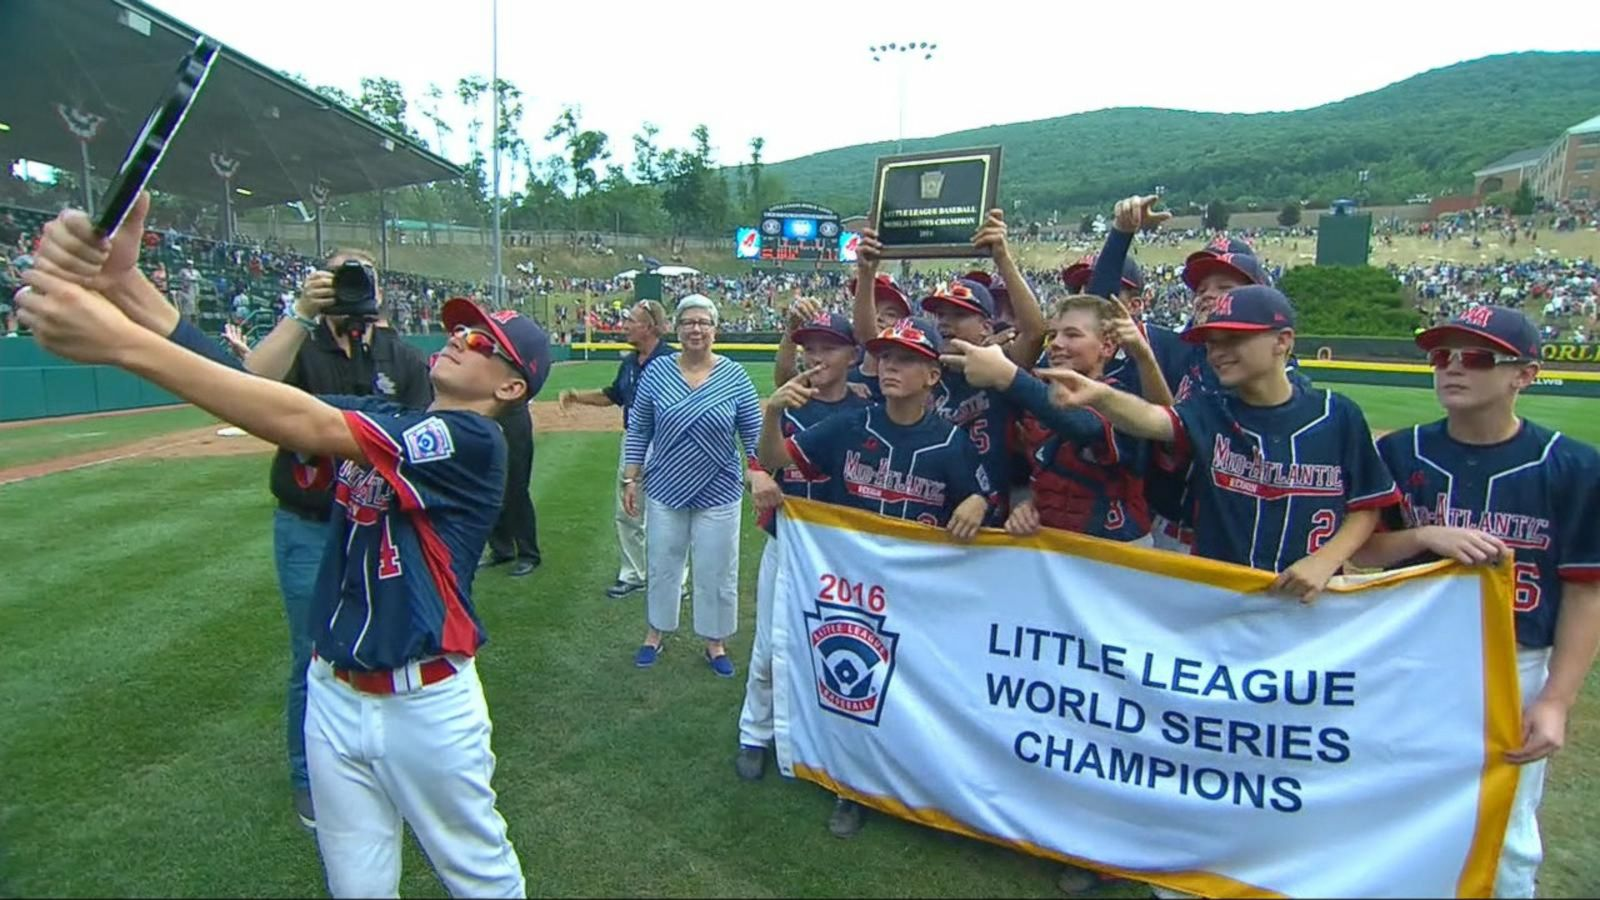 VIDEO: Little League Team Wins World Series Championship and a Perfect Season